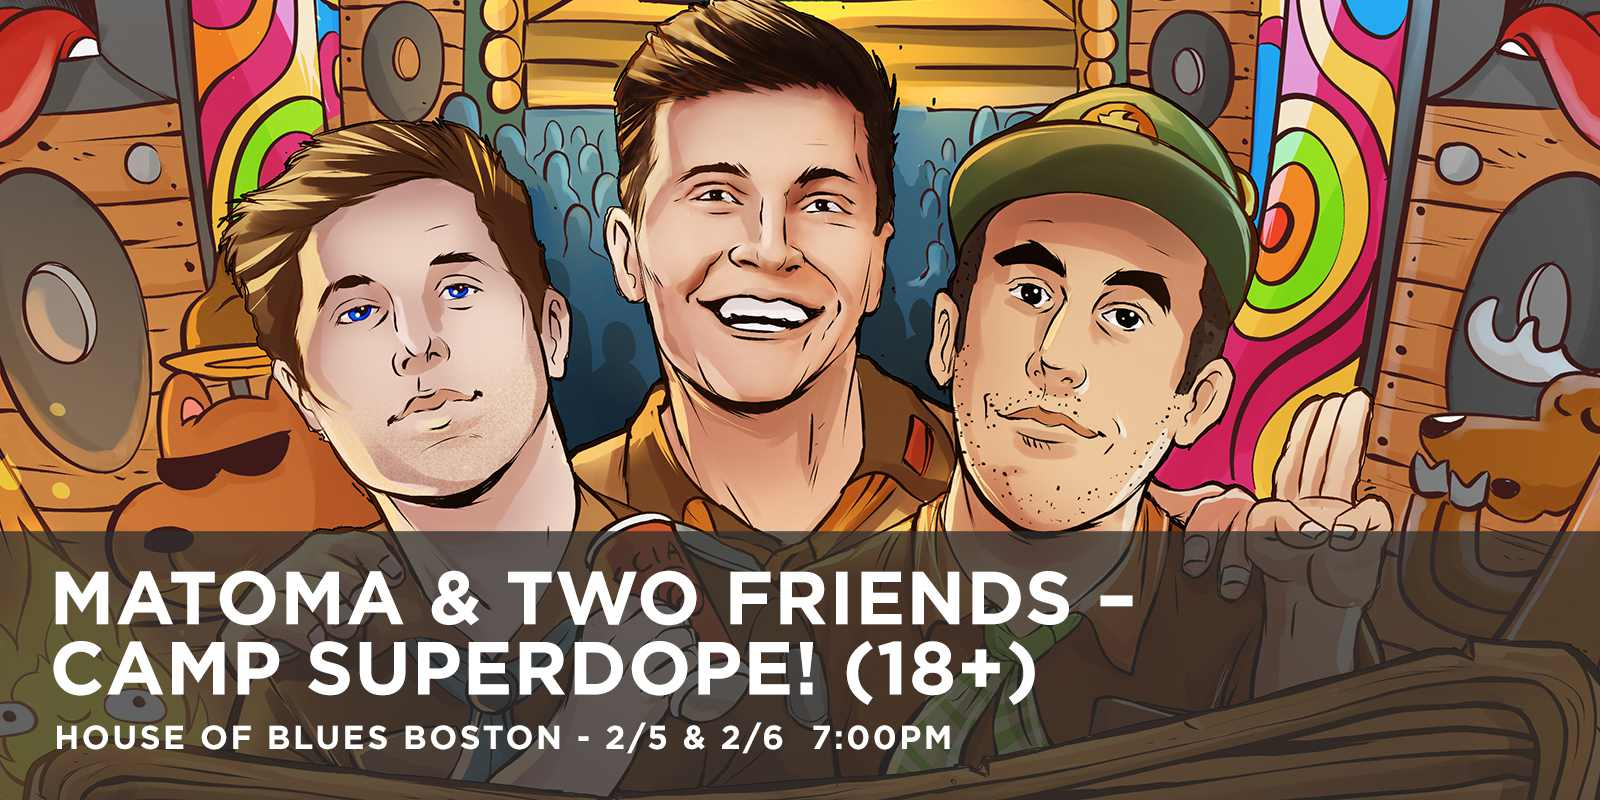 House of Blues Boston MATOMA and TWO FRIENDS Camp Superdope!